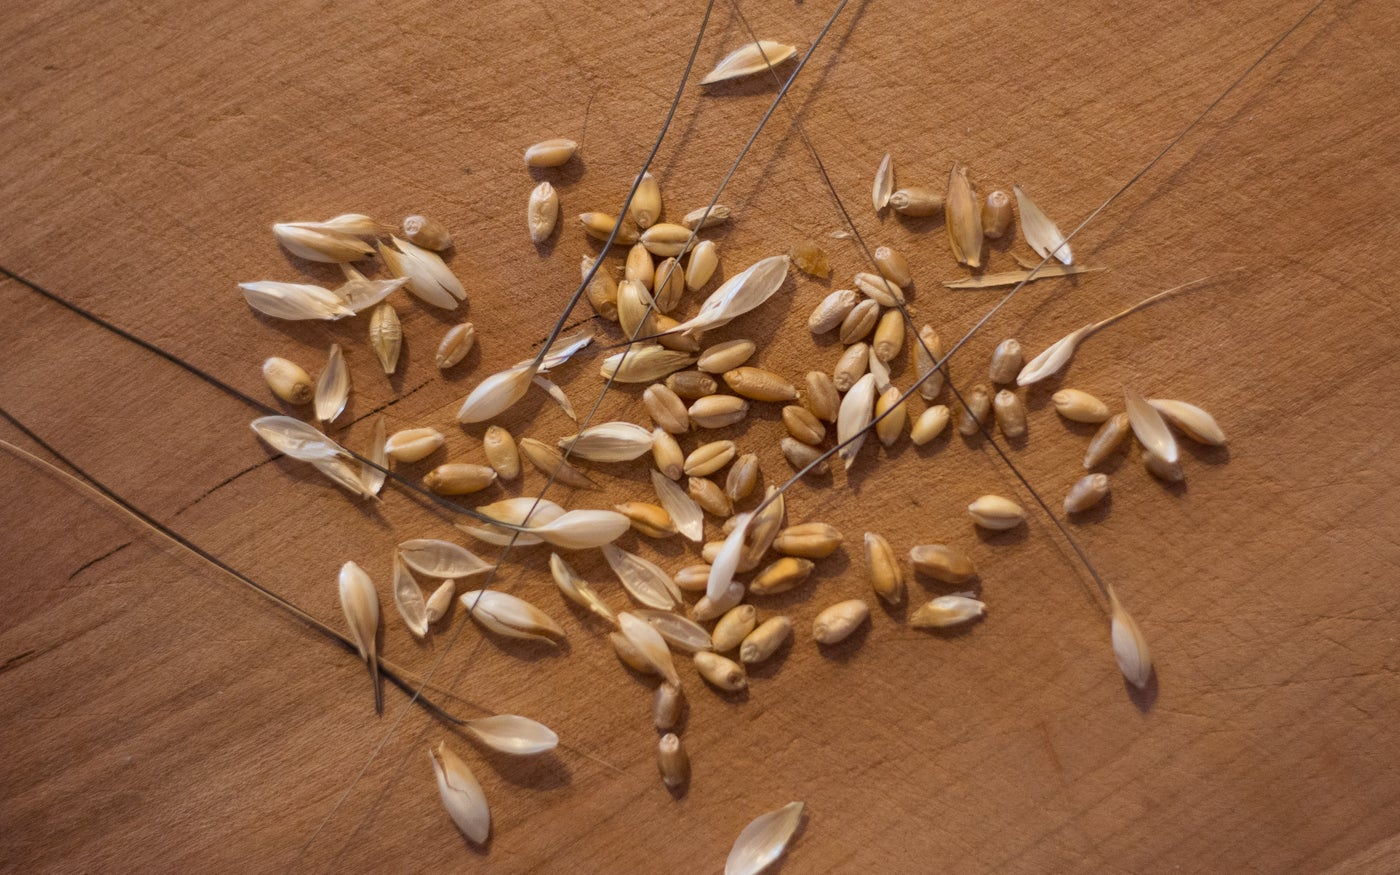 Anatomy of a Wheat Kernel